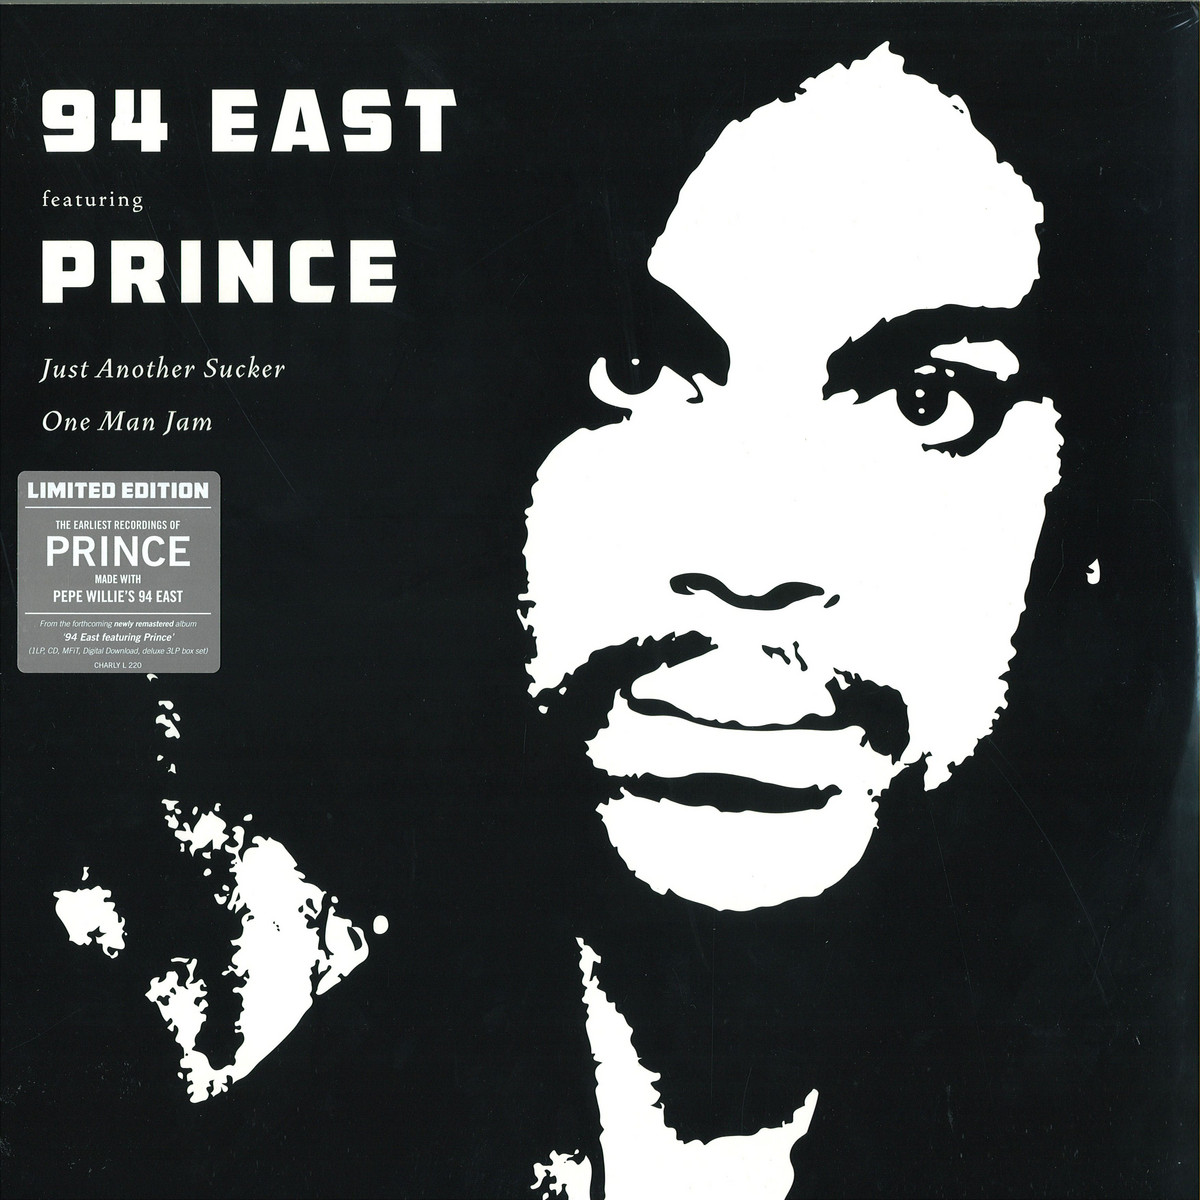 94 East Feat  Prince - Just Another Sucker / CHARLY